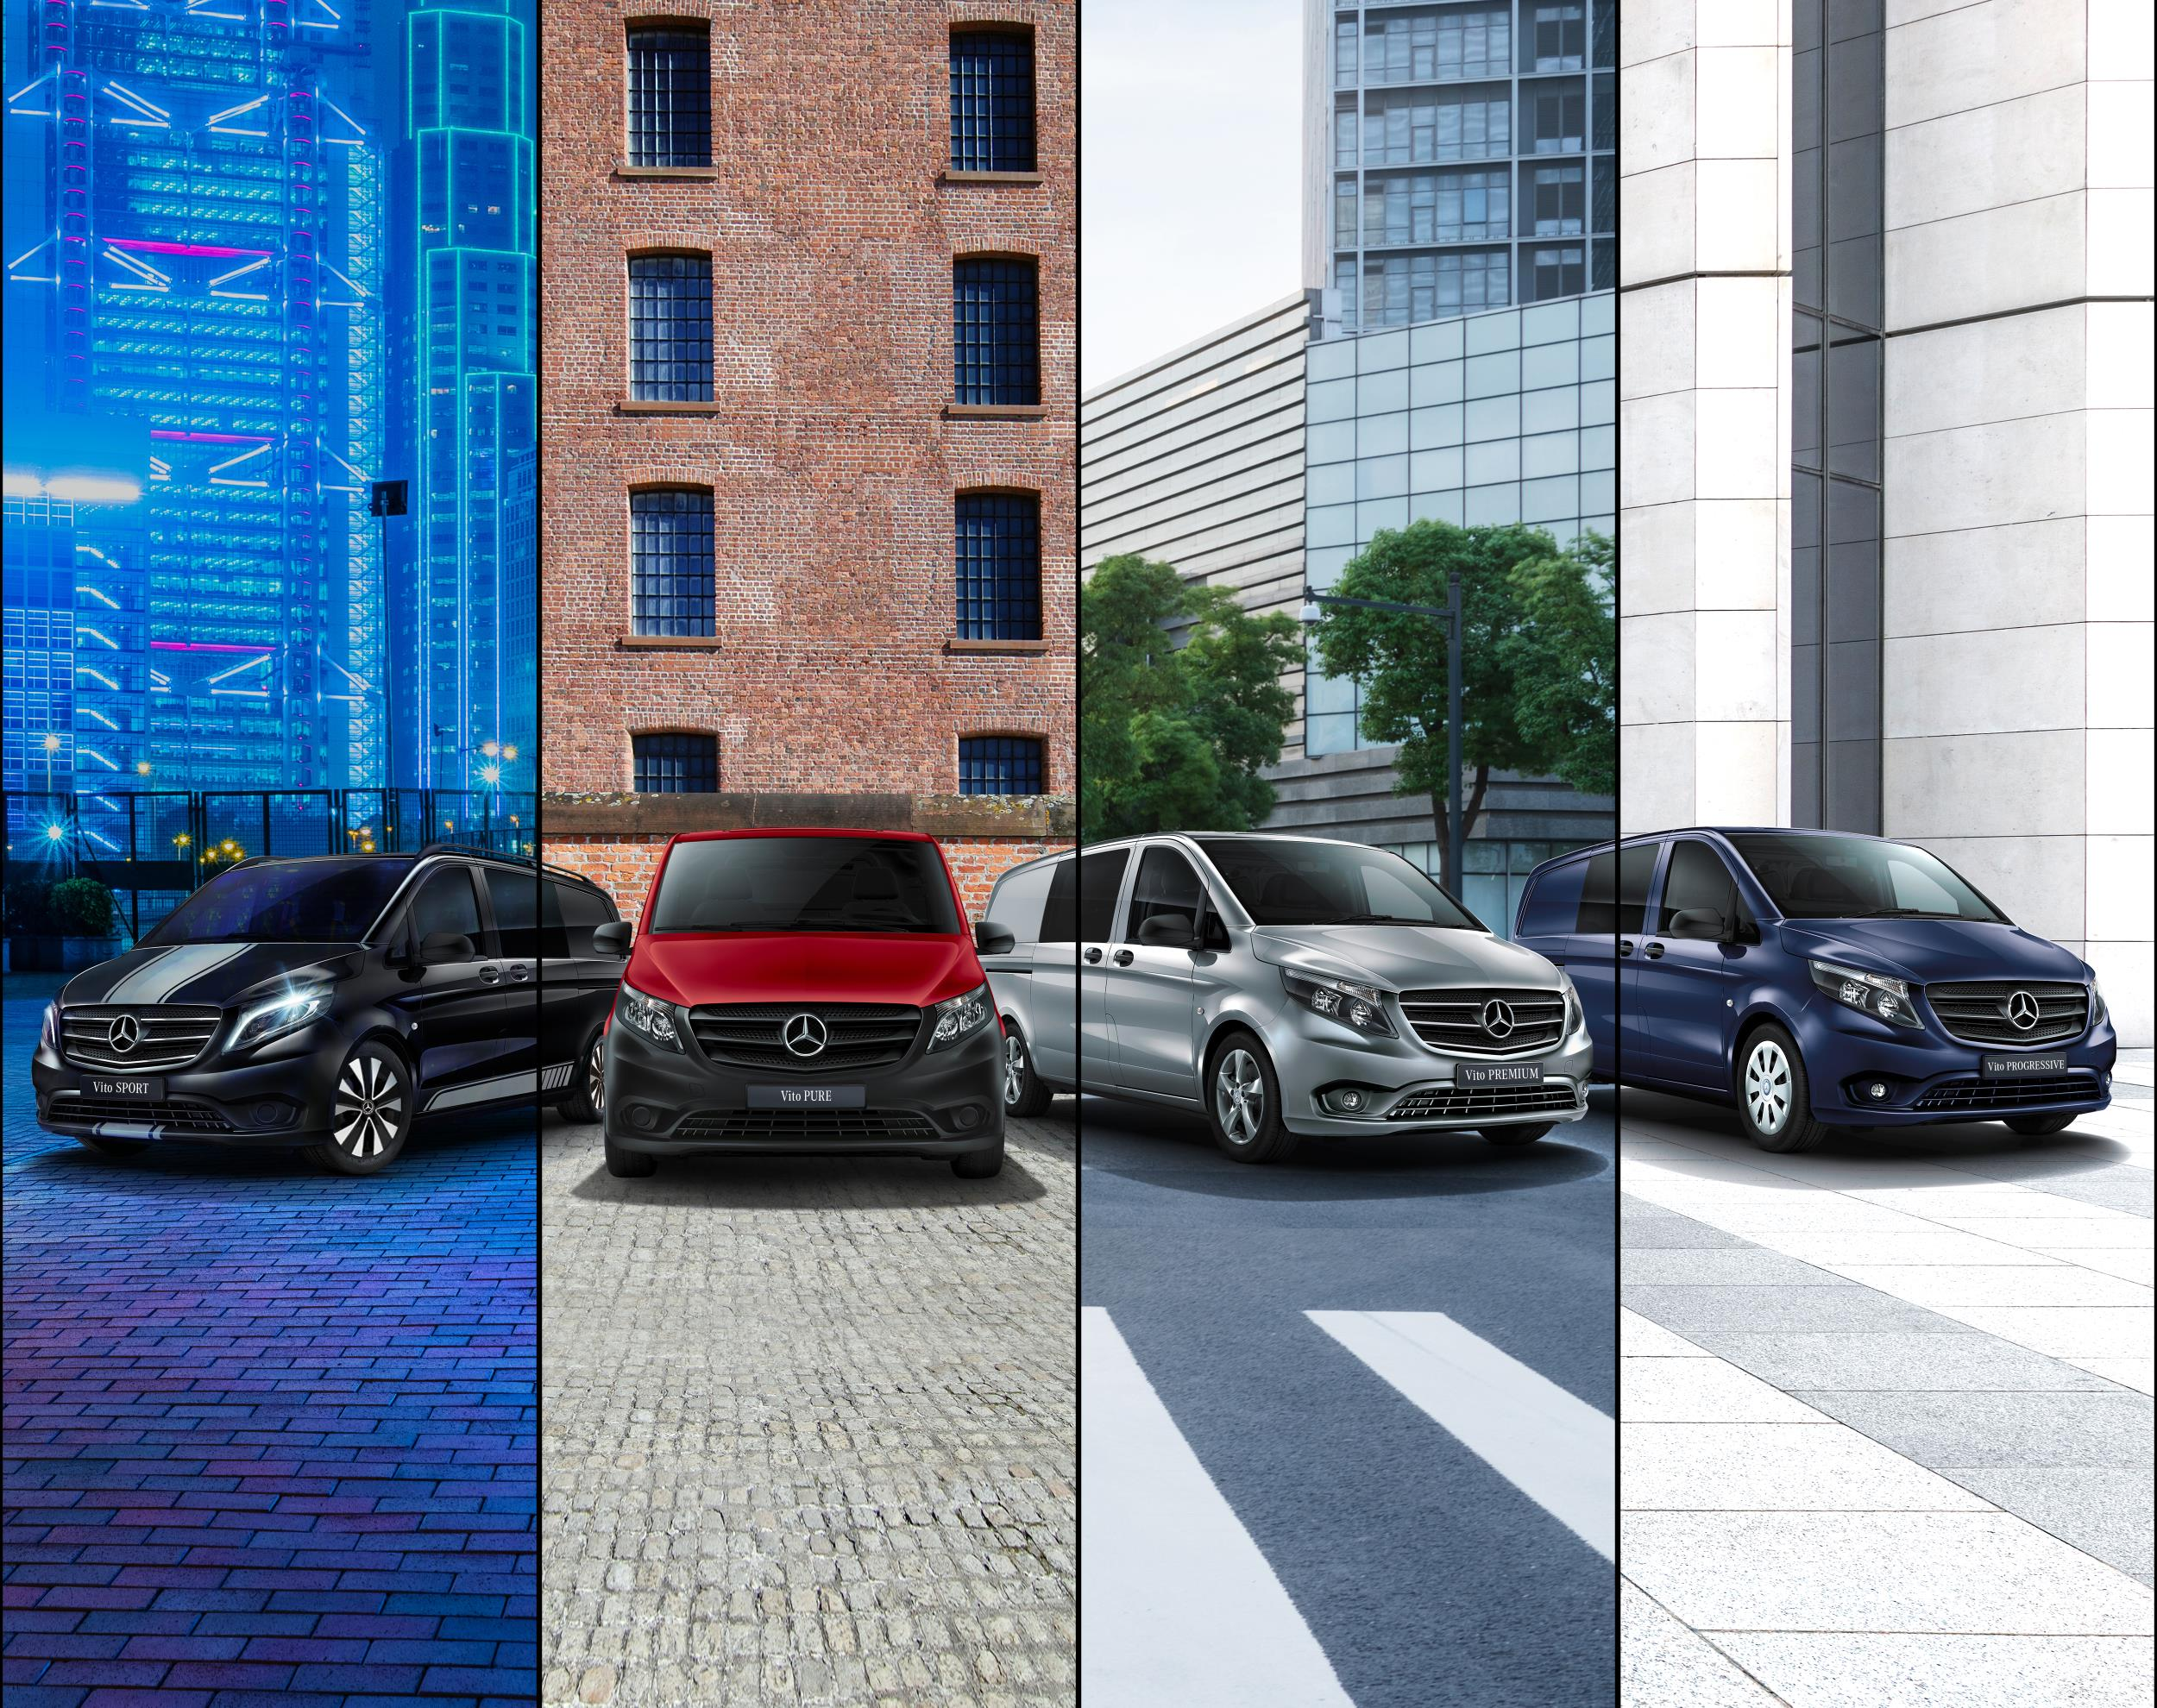 A variety of trim levels are available with the V-Class